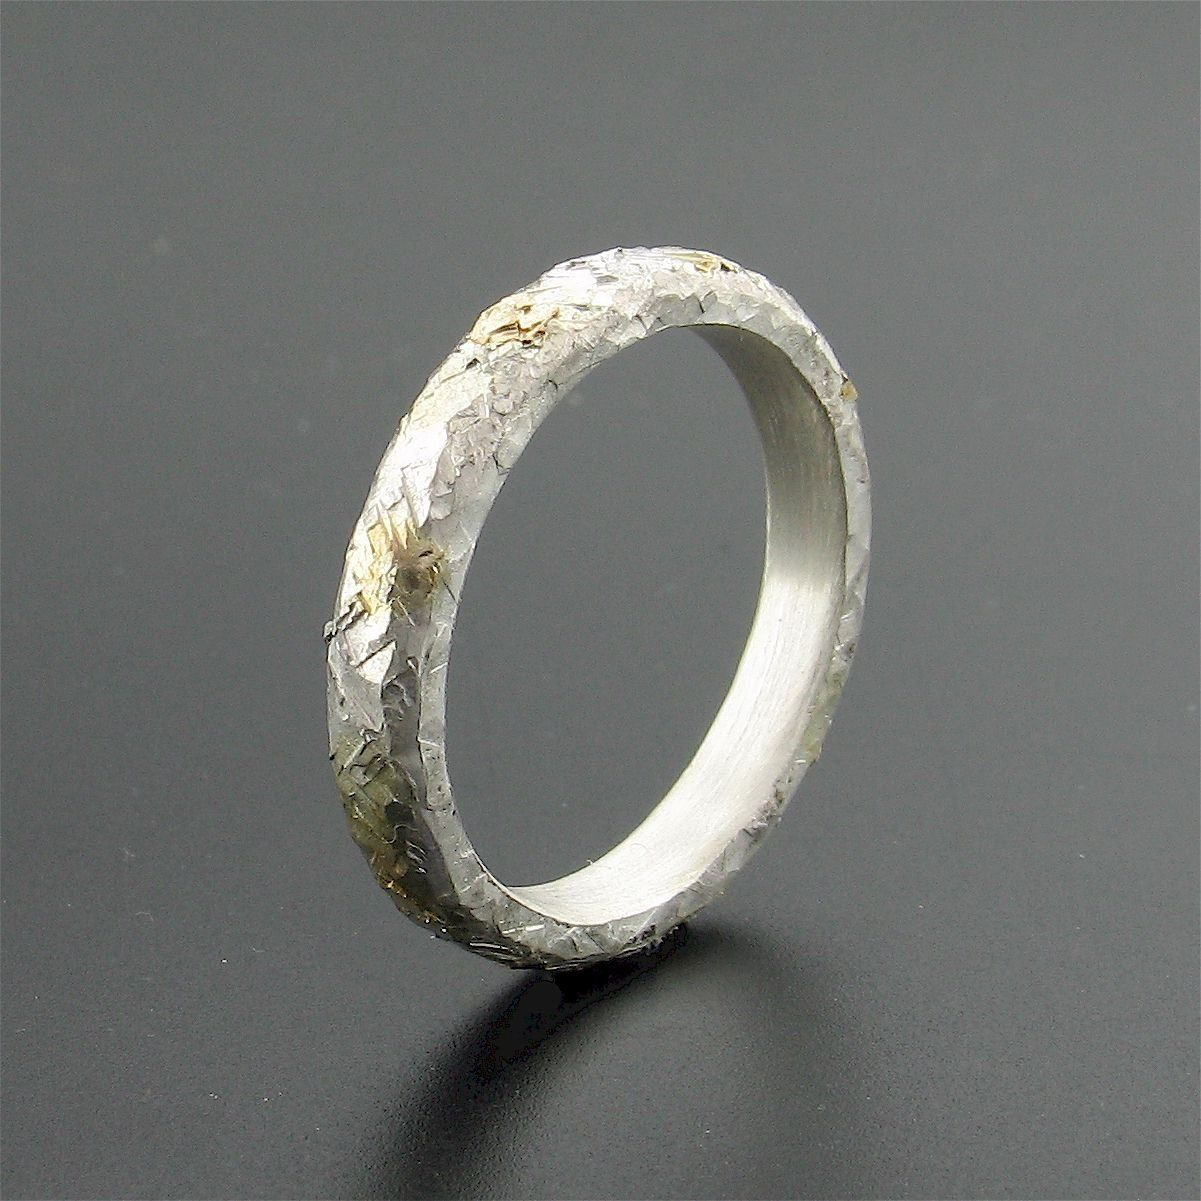 Silver and gold Sunrise court wedding ring with rustic